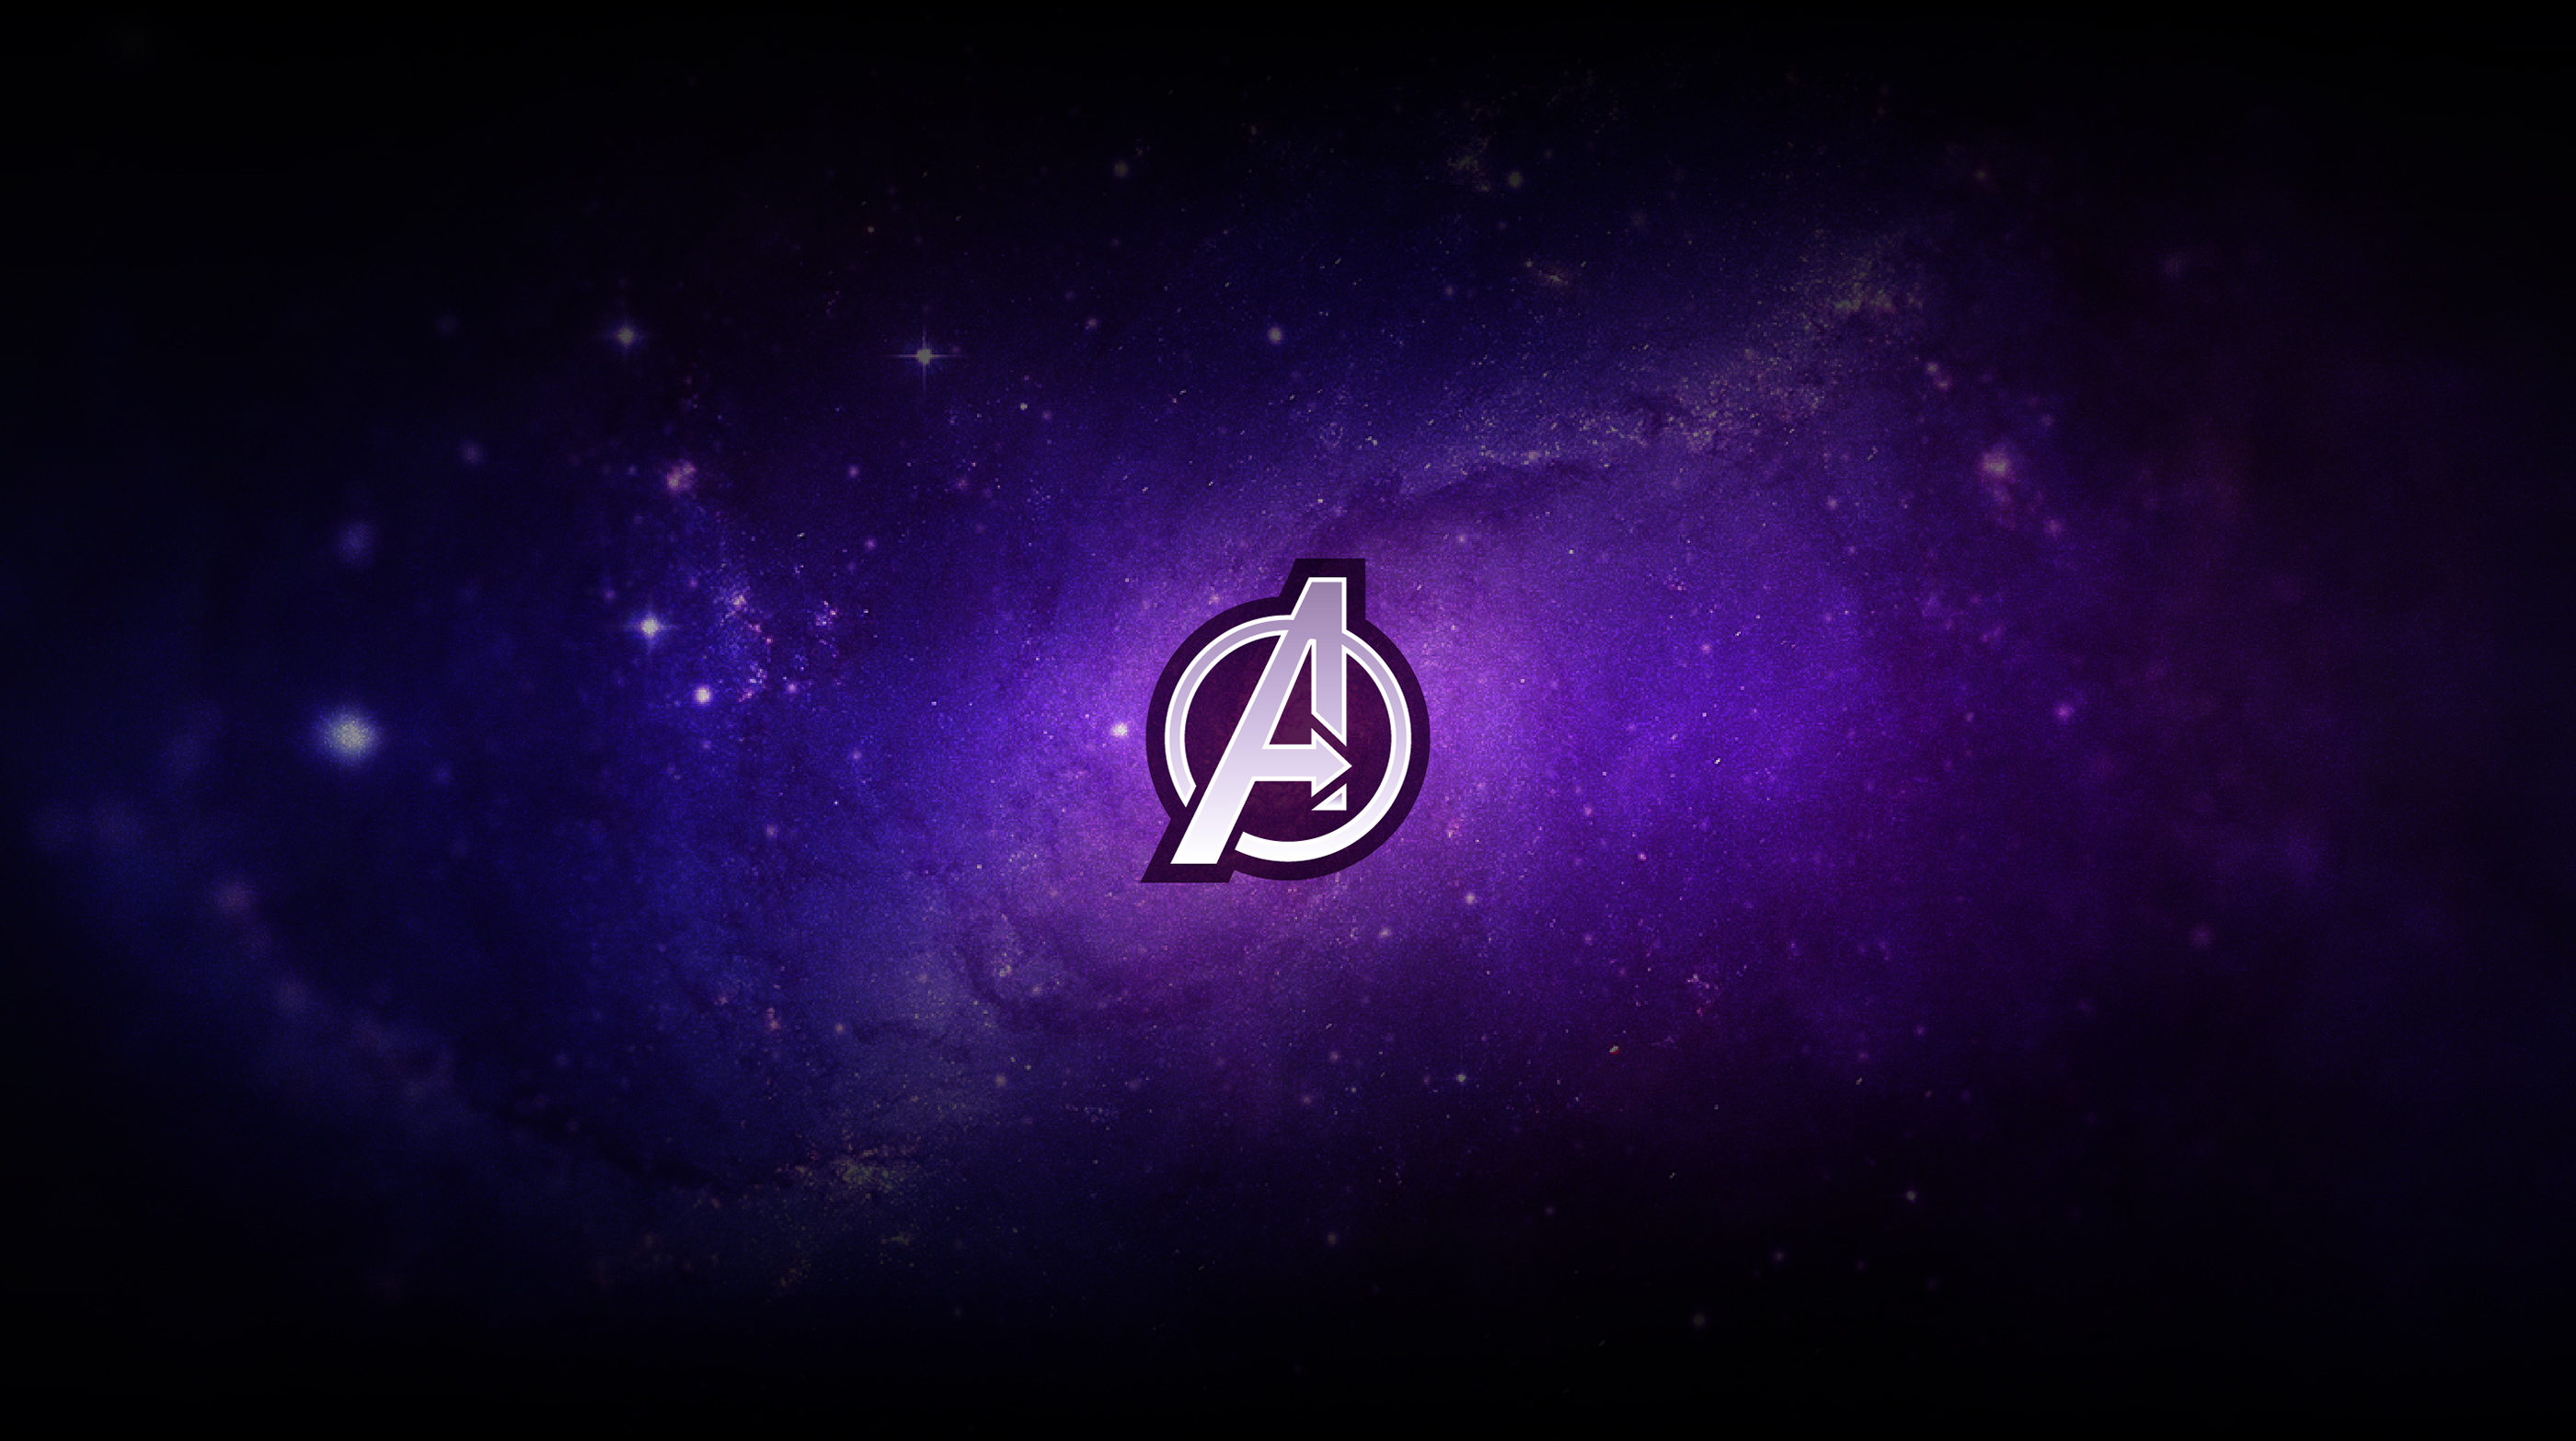 Avengers Logo Hd Superheroes 4k Wallpapers Images Backgrounds Photos And Pictures